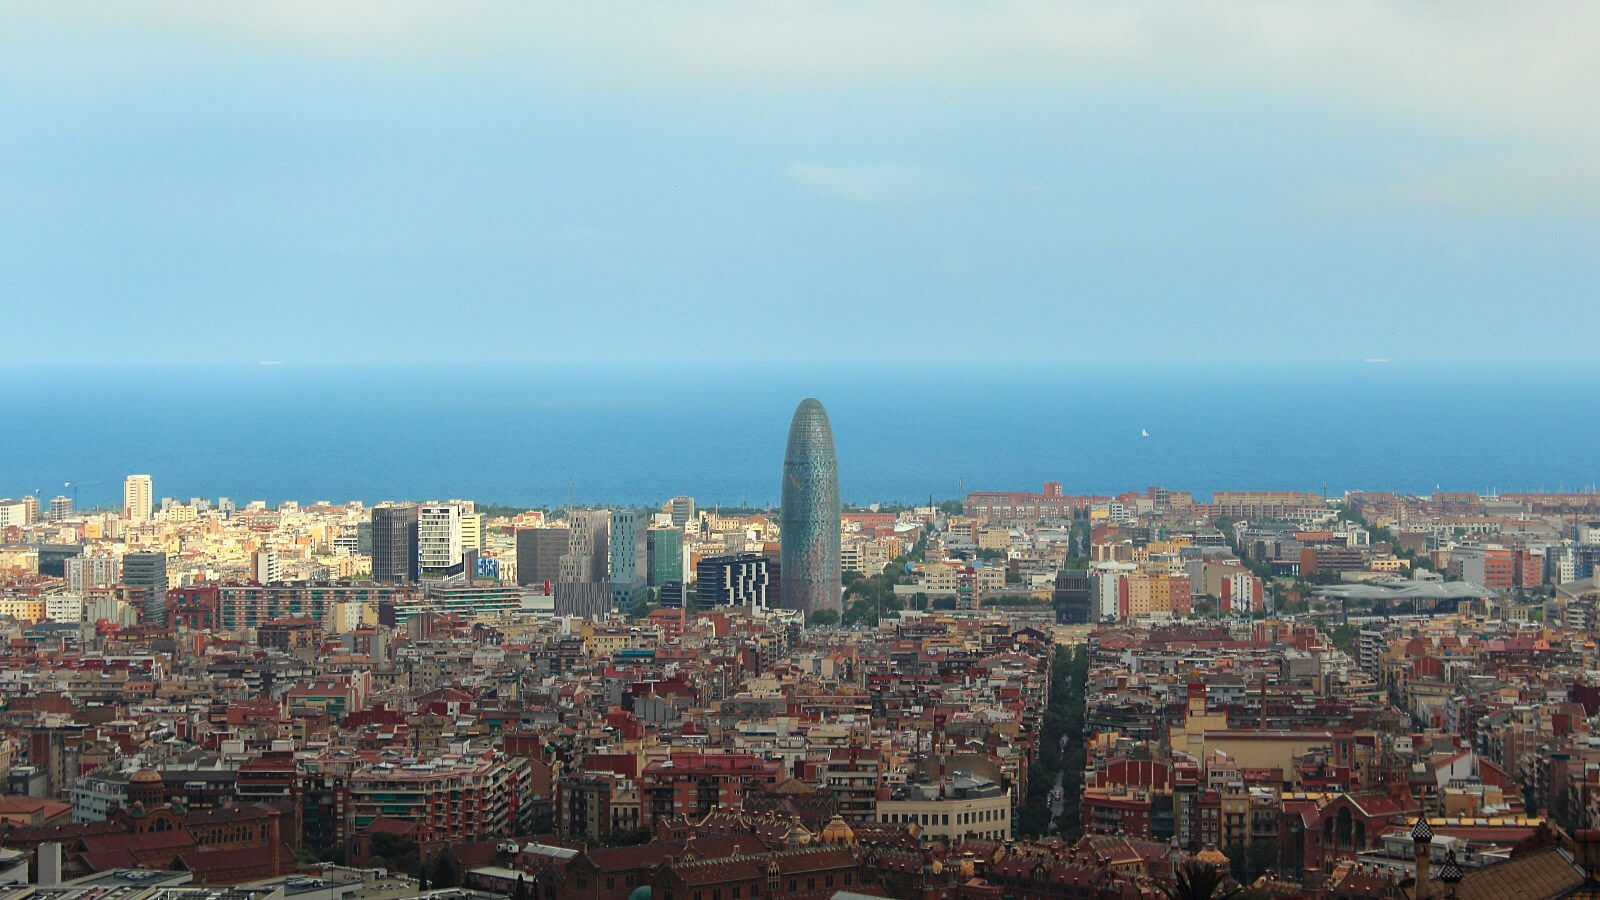 Skyline view of Barcelona, Spain, one of the best destinations for solo female travelers